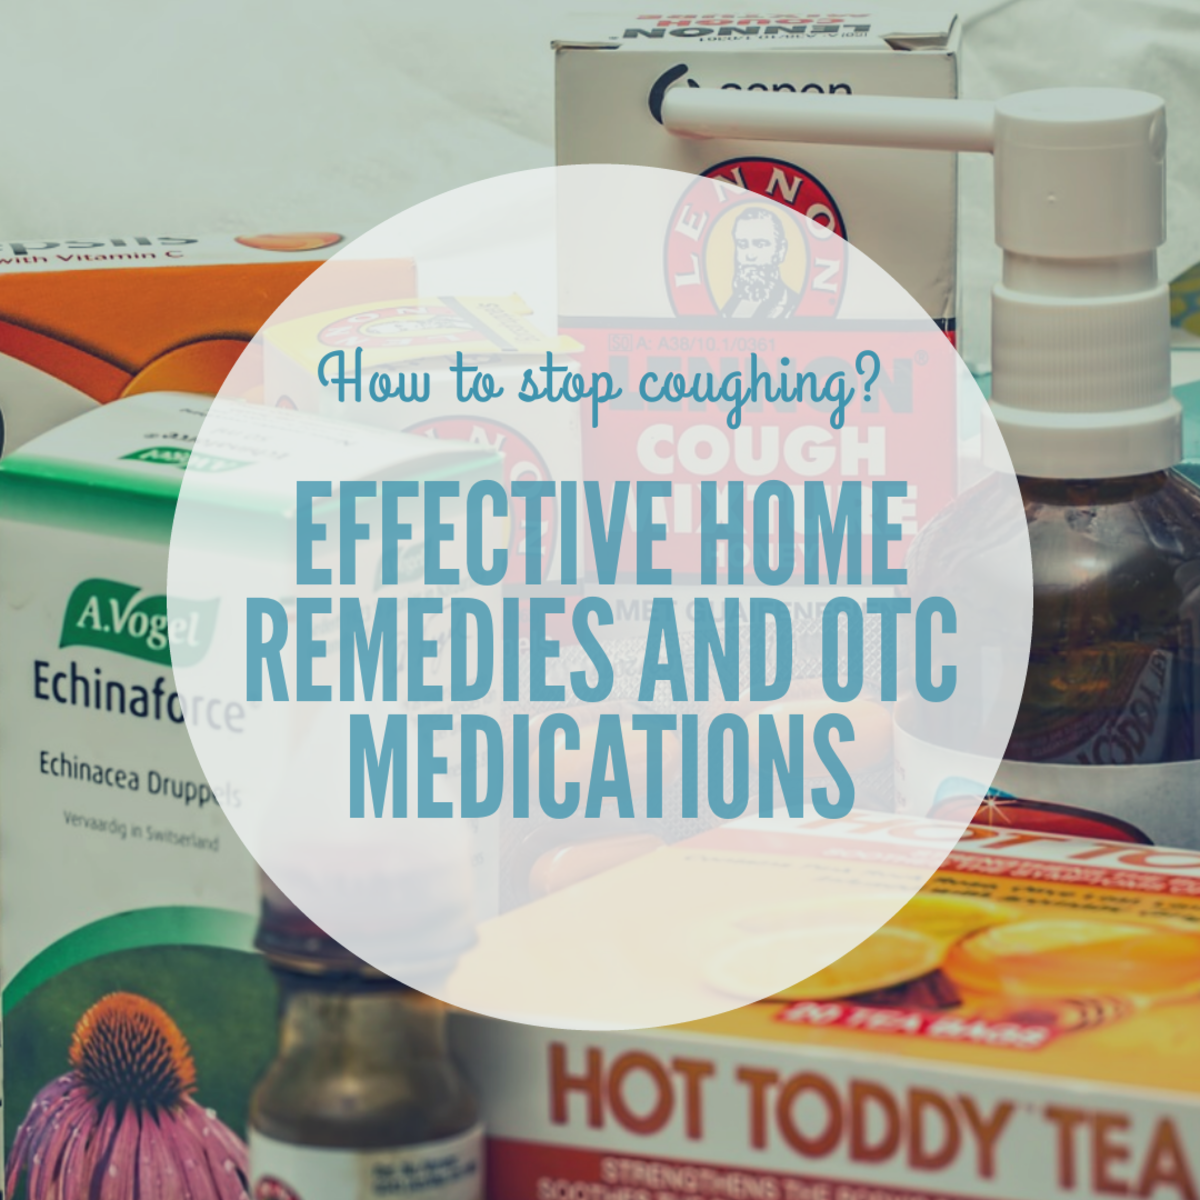 How to Stop Coughing: Home Remedies and Over-the-Counter Medications